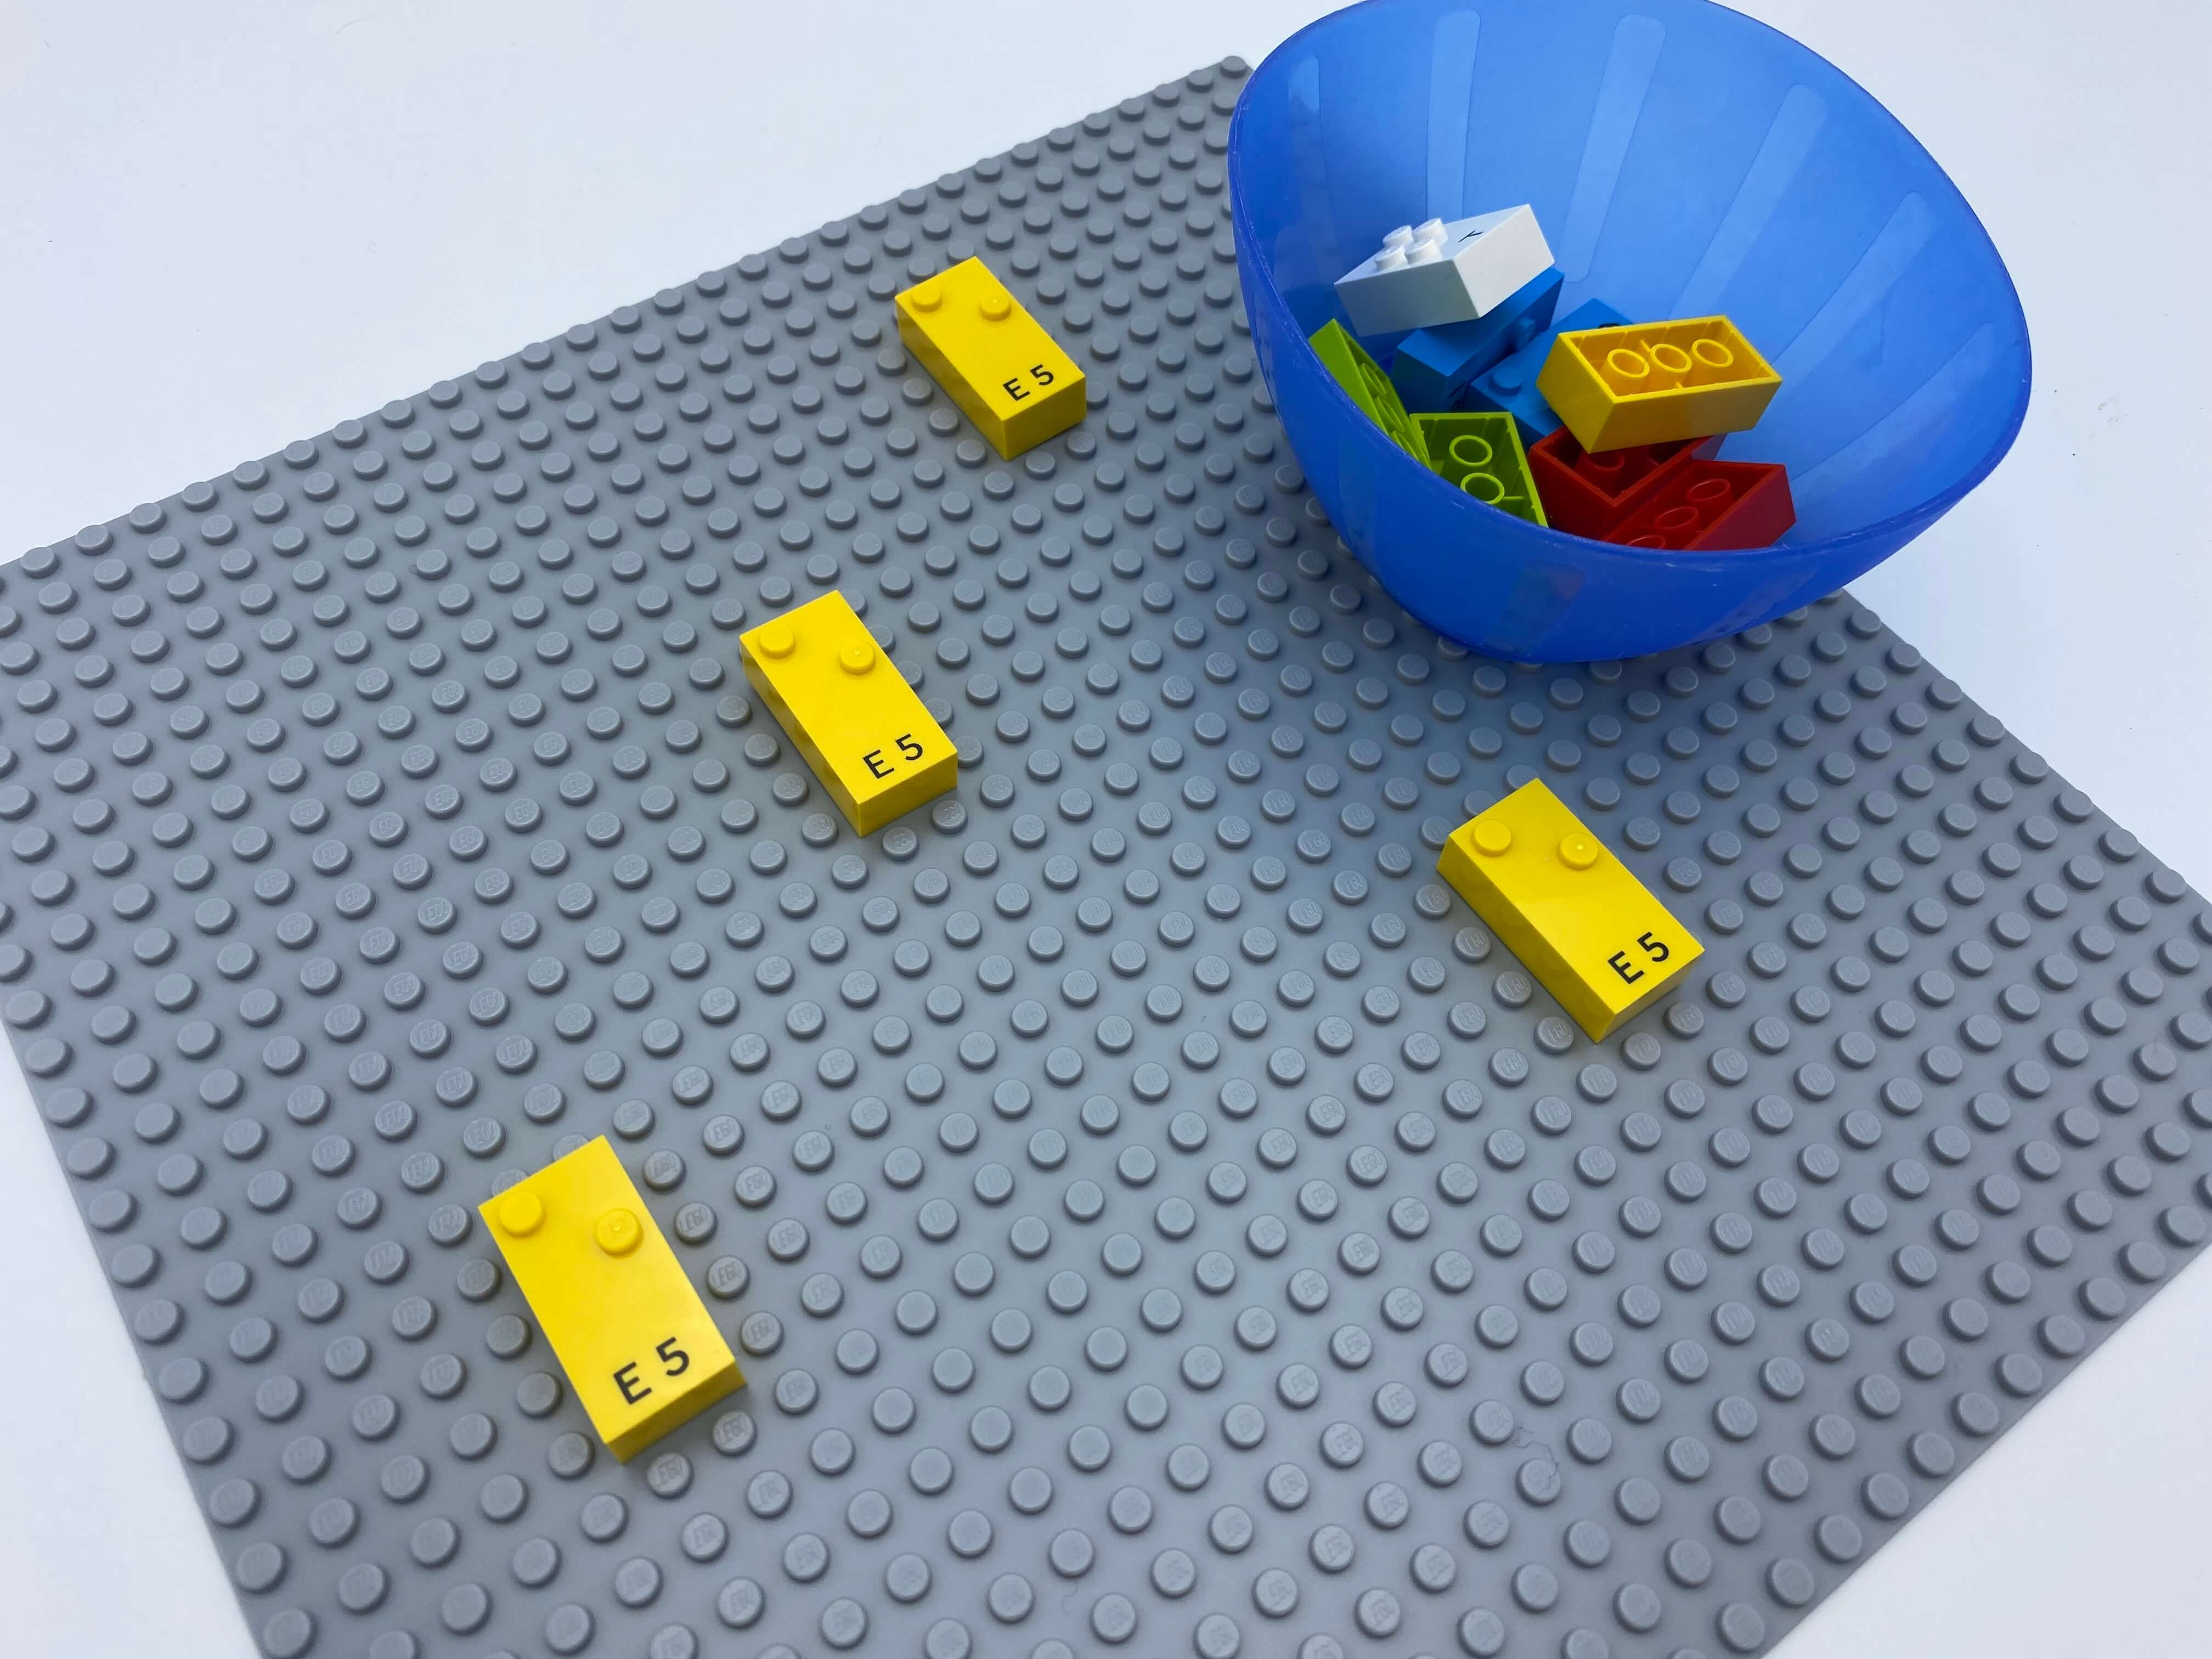 4 letter bricks spread over the base plate, one bowl with bricks.